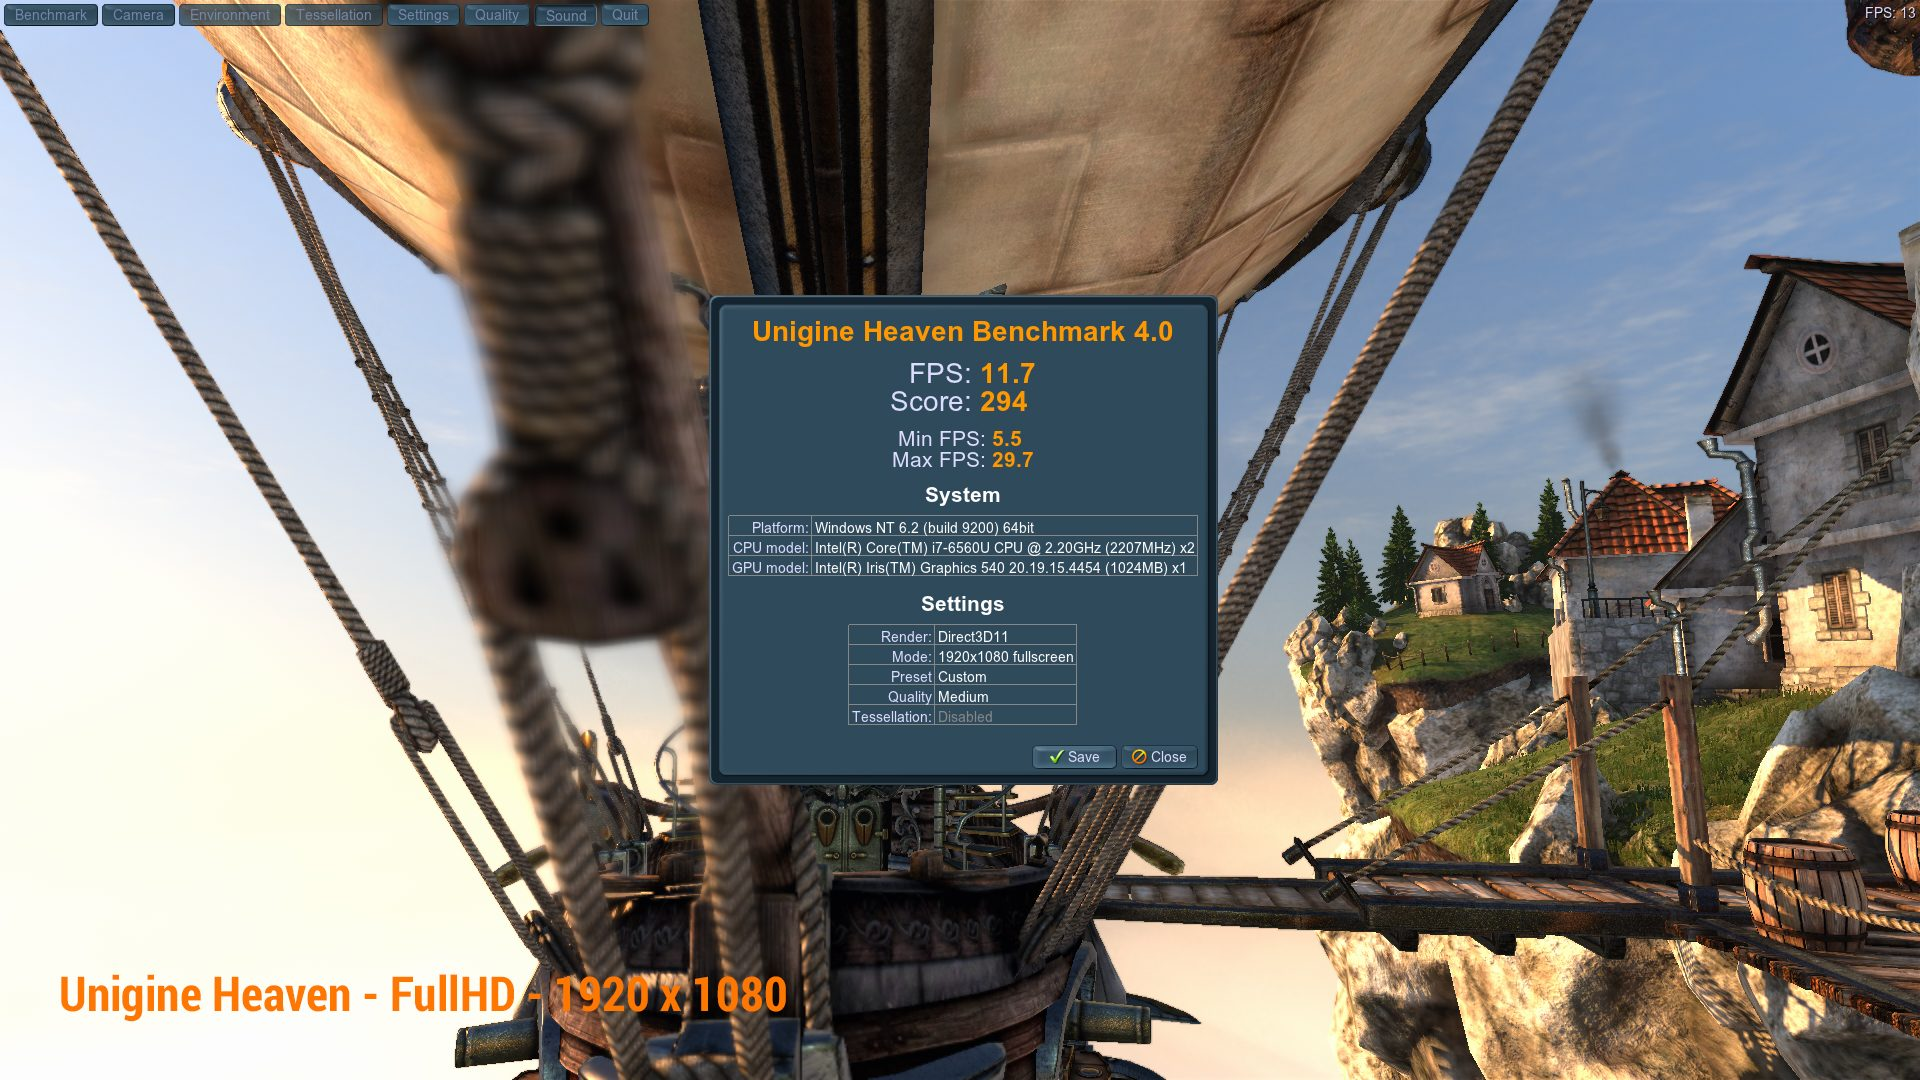 HP_Spectre_OLED-Benchmark_Spiele-6